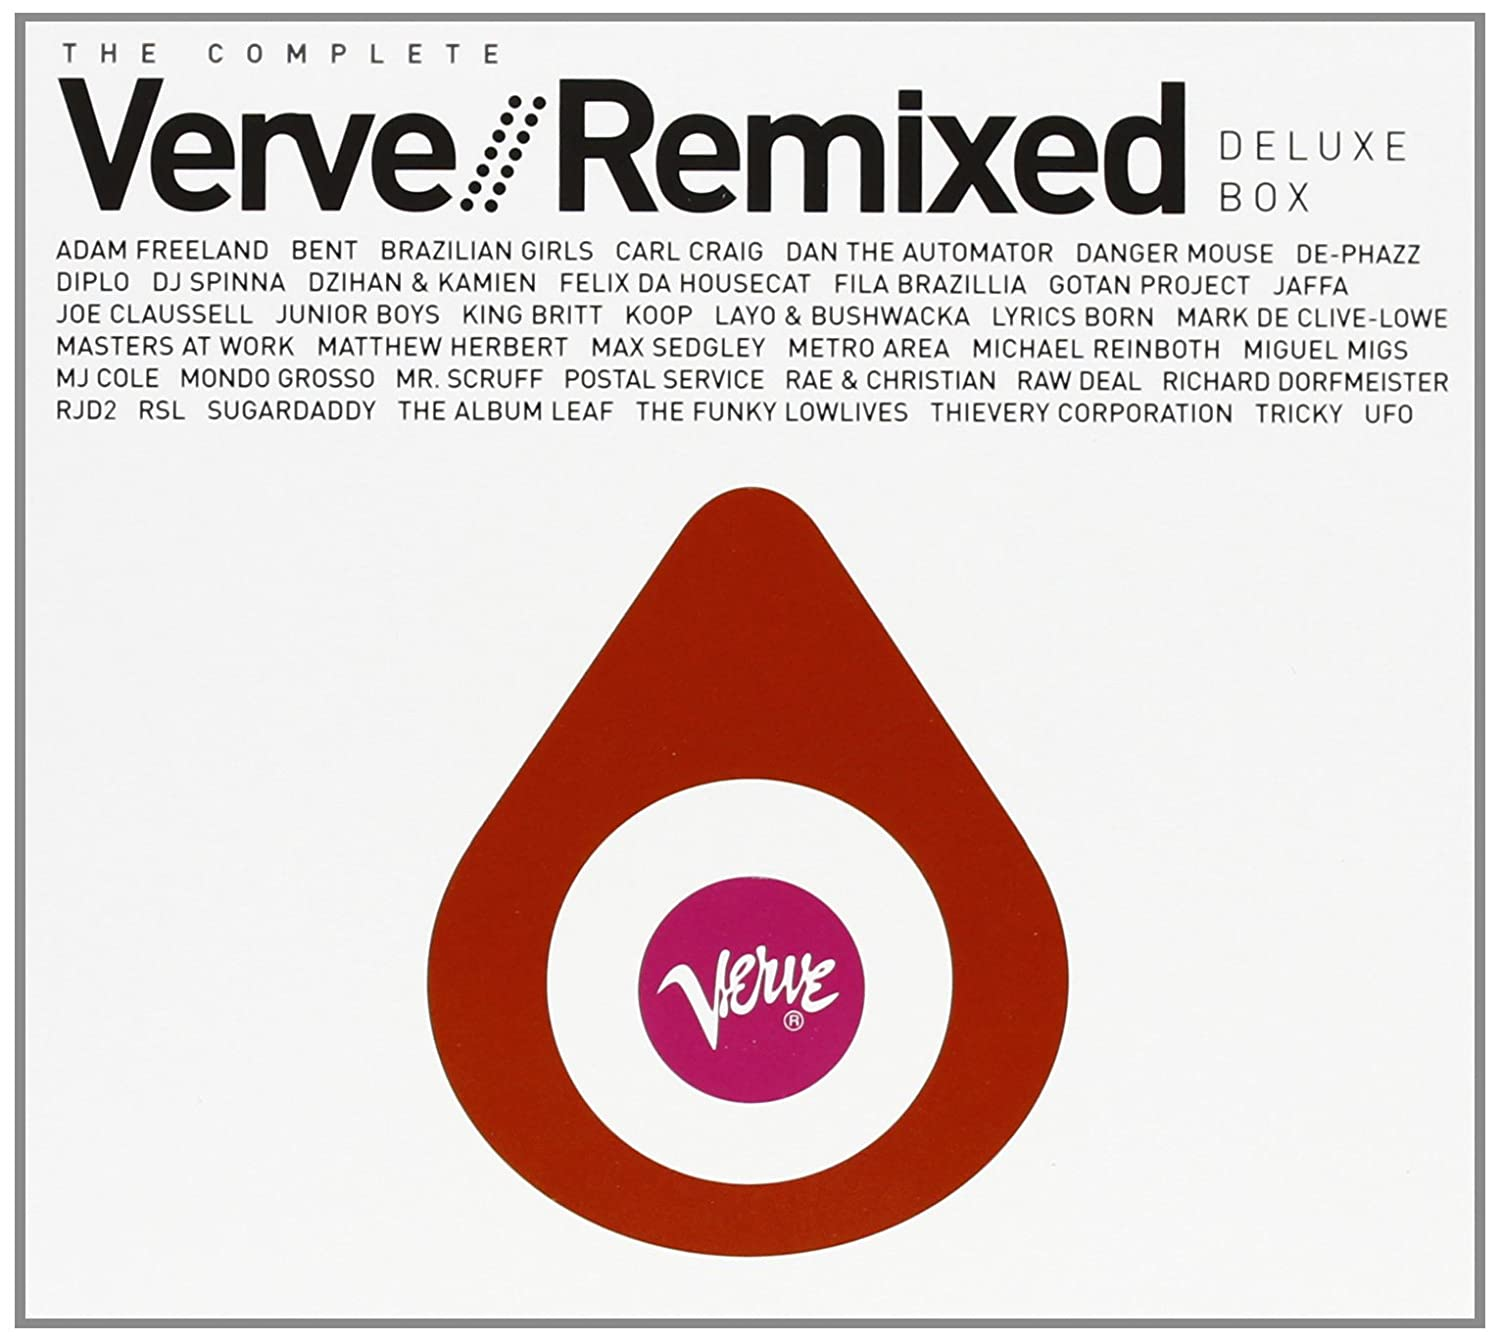 Complete Verve Remixed Deluxe Box                                                                                                                                                                                                                                                                                                                                                                                                <span class=